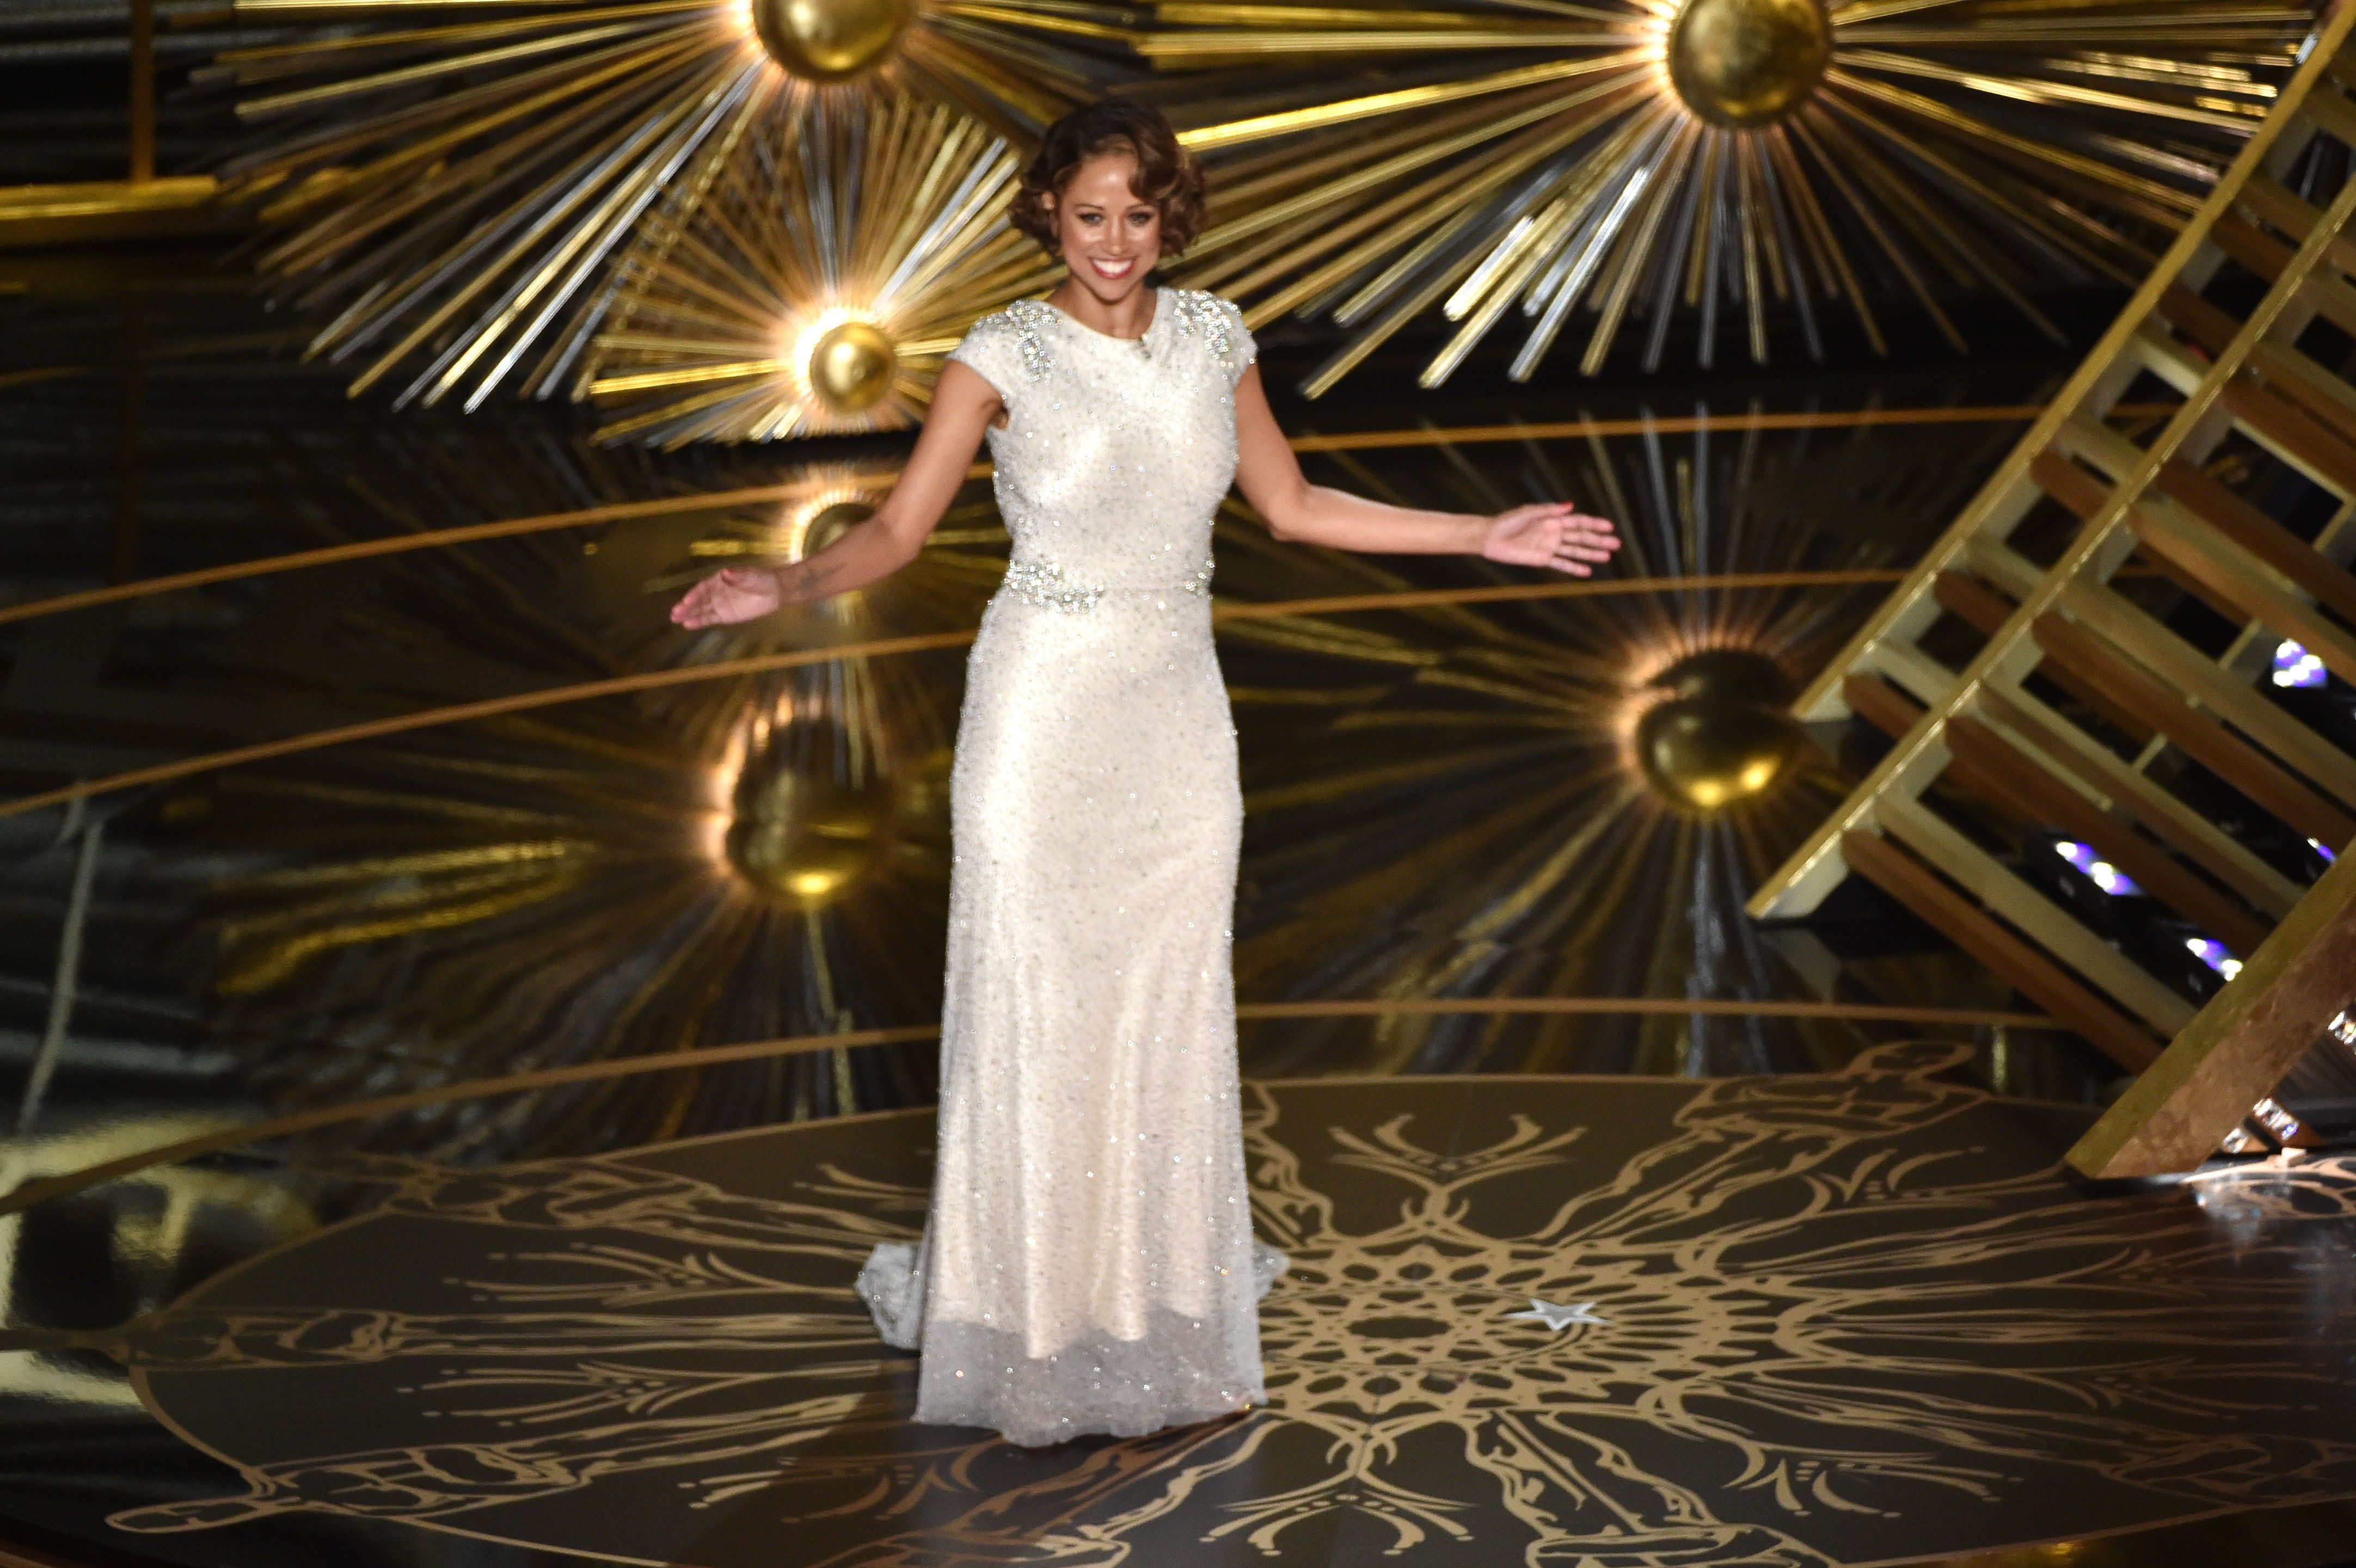 HOLLYWOOD, CA - FEBRUARY 28:  Actress Stacey Dash speaks onstage during the 88th Annual Academy Awards at the Dolby Theatre on February 28, 2016 in Hollywood, California.  (Photo by Kevin Winter/Getty Images)